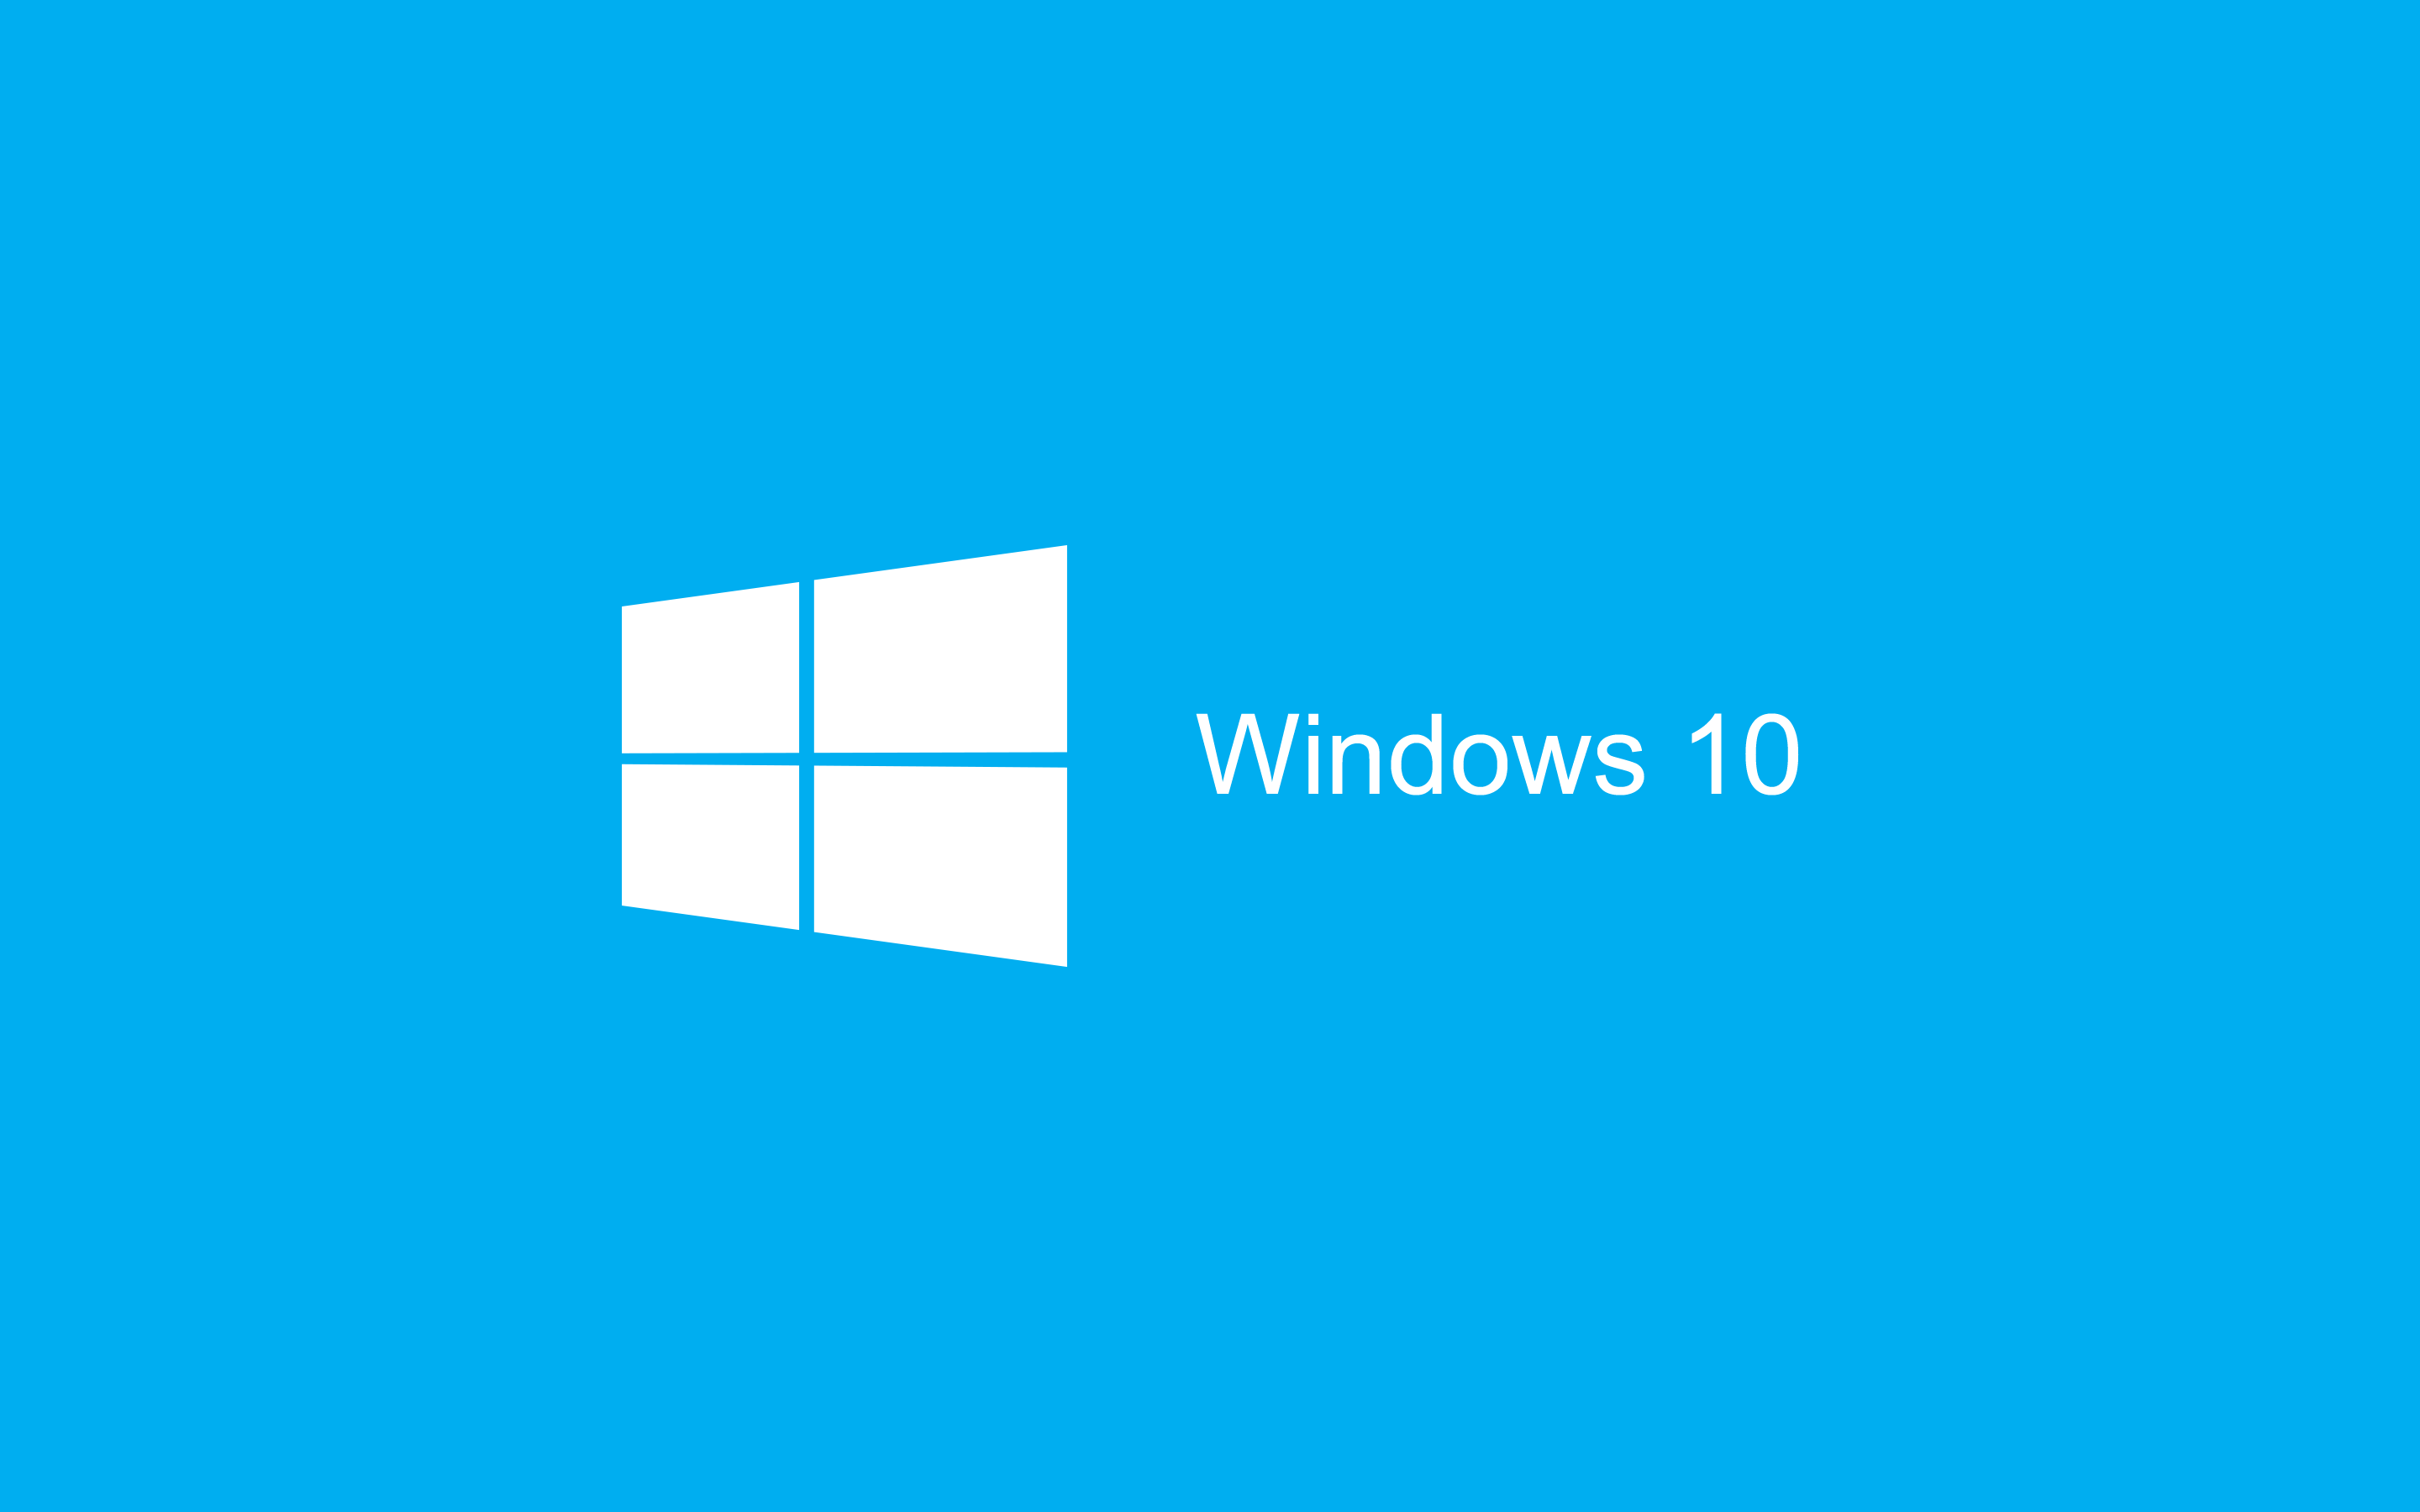 Is the free Windows 10 better than its paid predecessors?